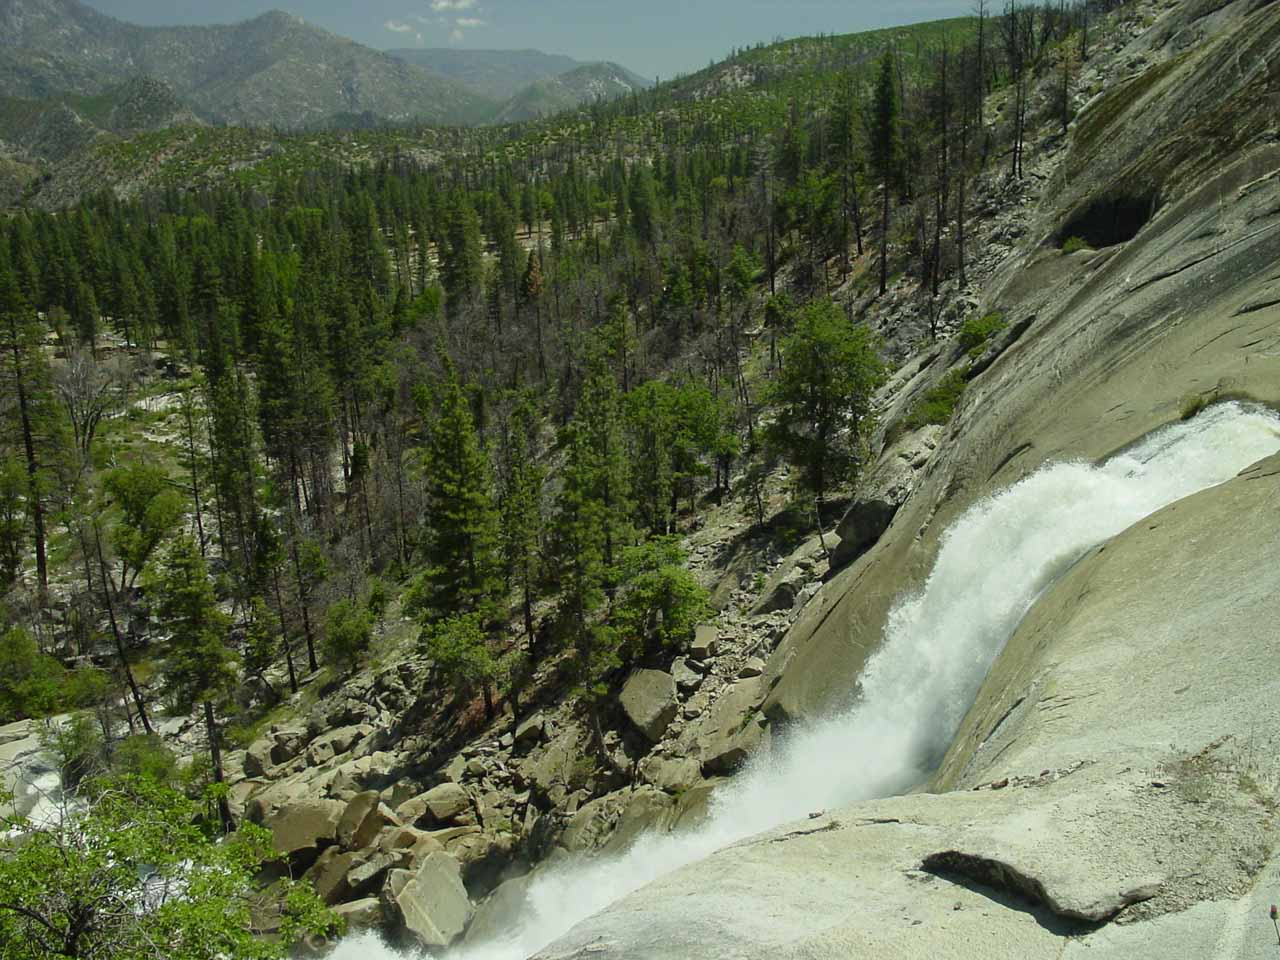 Looking over the brink of Peppermint Creek Falls towards the Dome Land Wilderness